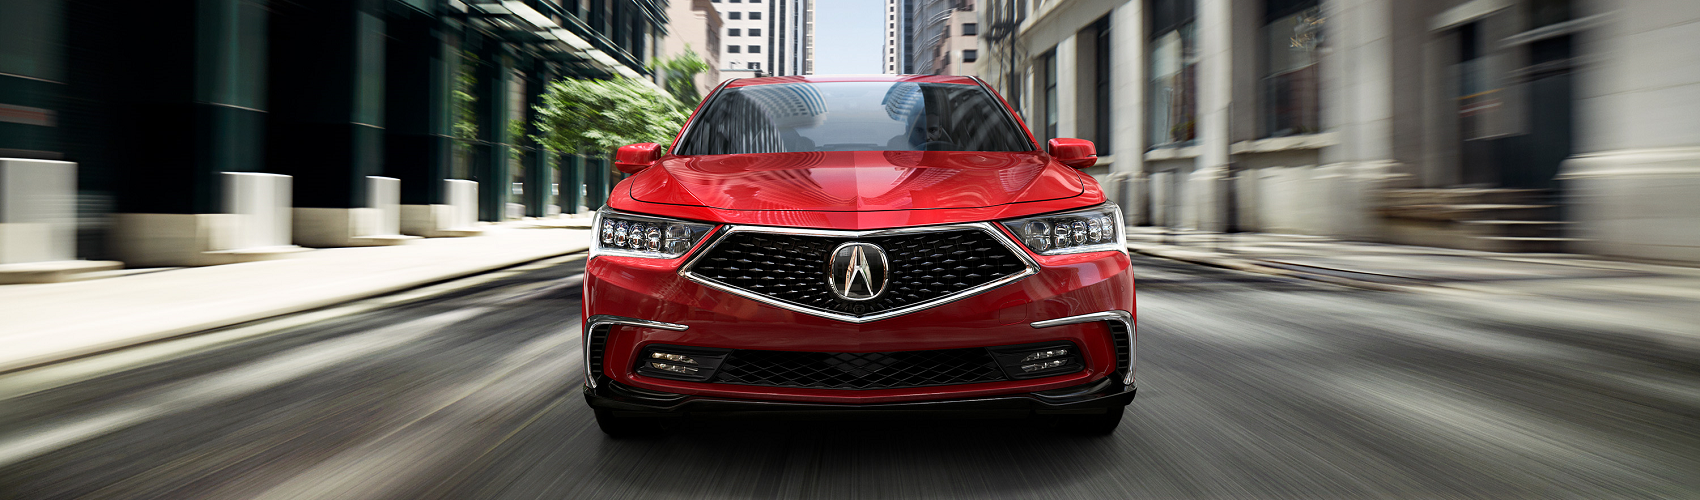 Red 2019 Acura RLX Driving